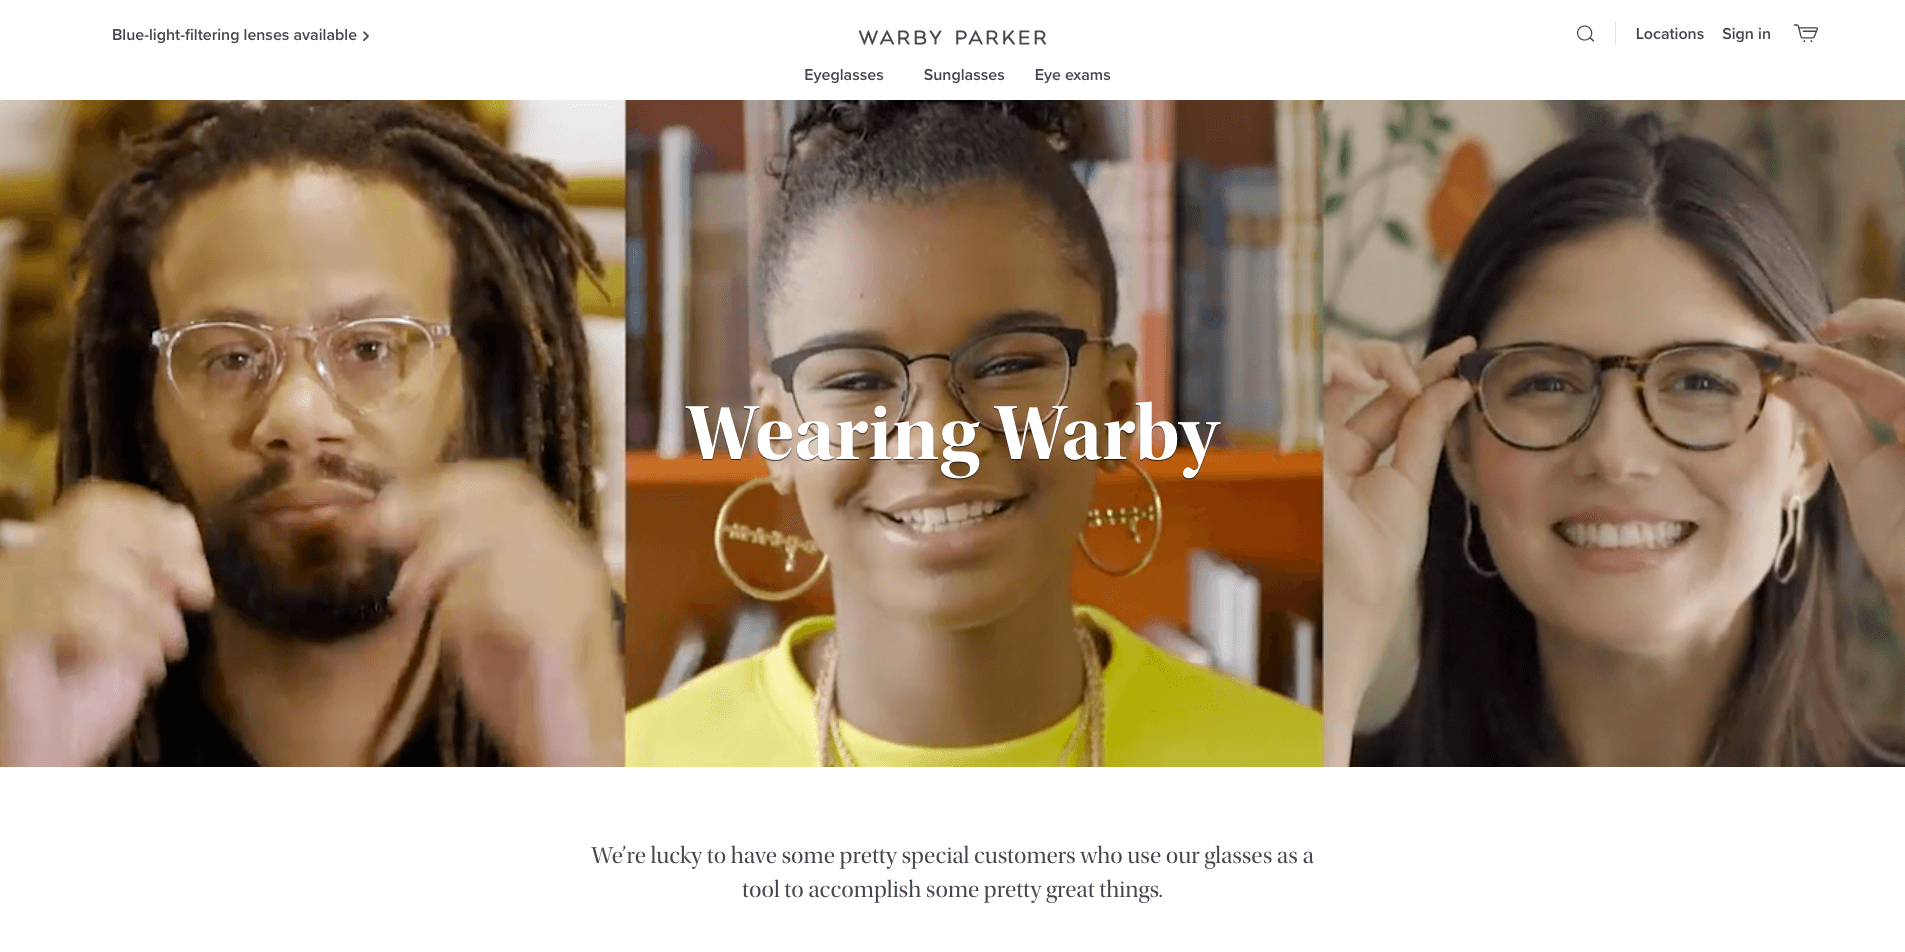 Brand storytelling warby parker wearing warby